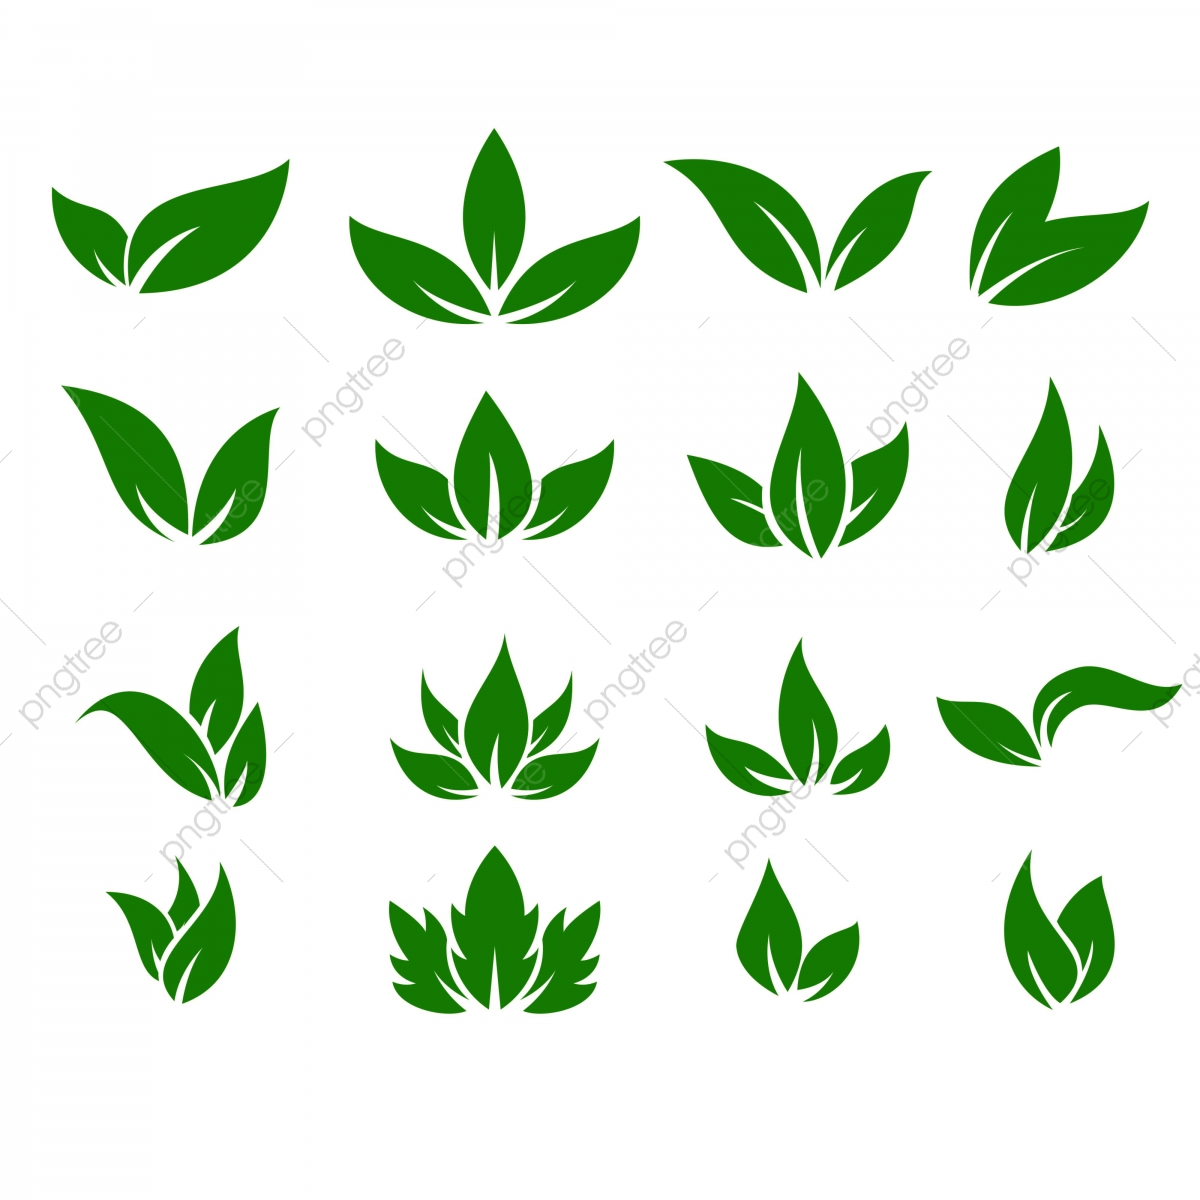 Leaf Icons Vector Design Leaves Green Concept Illustration.